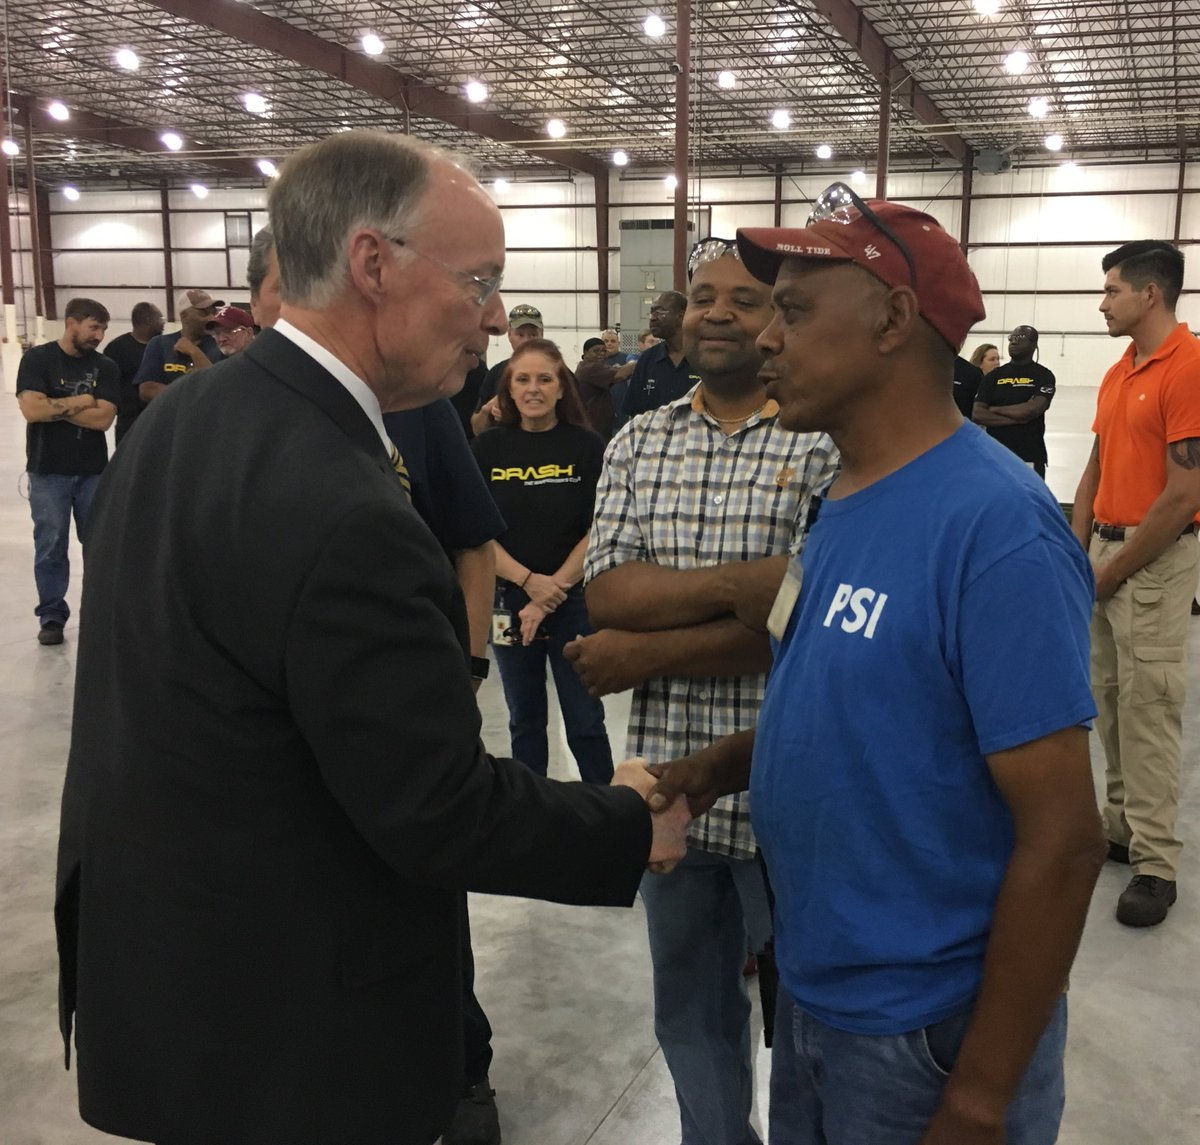 gov robert bentley on twitter jobs more jobs expanding robert bentley on twitter jobs more jobs expanding industry for hdt global always proud to announce good jobs for the hardworking people of our